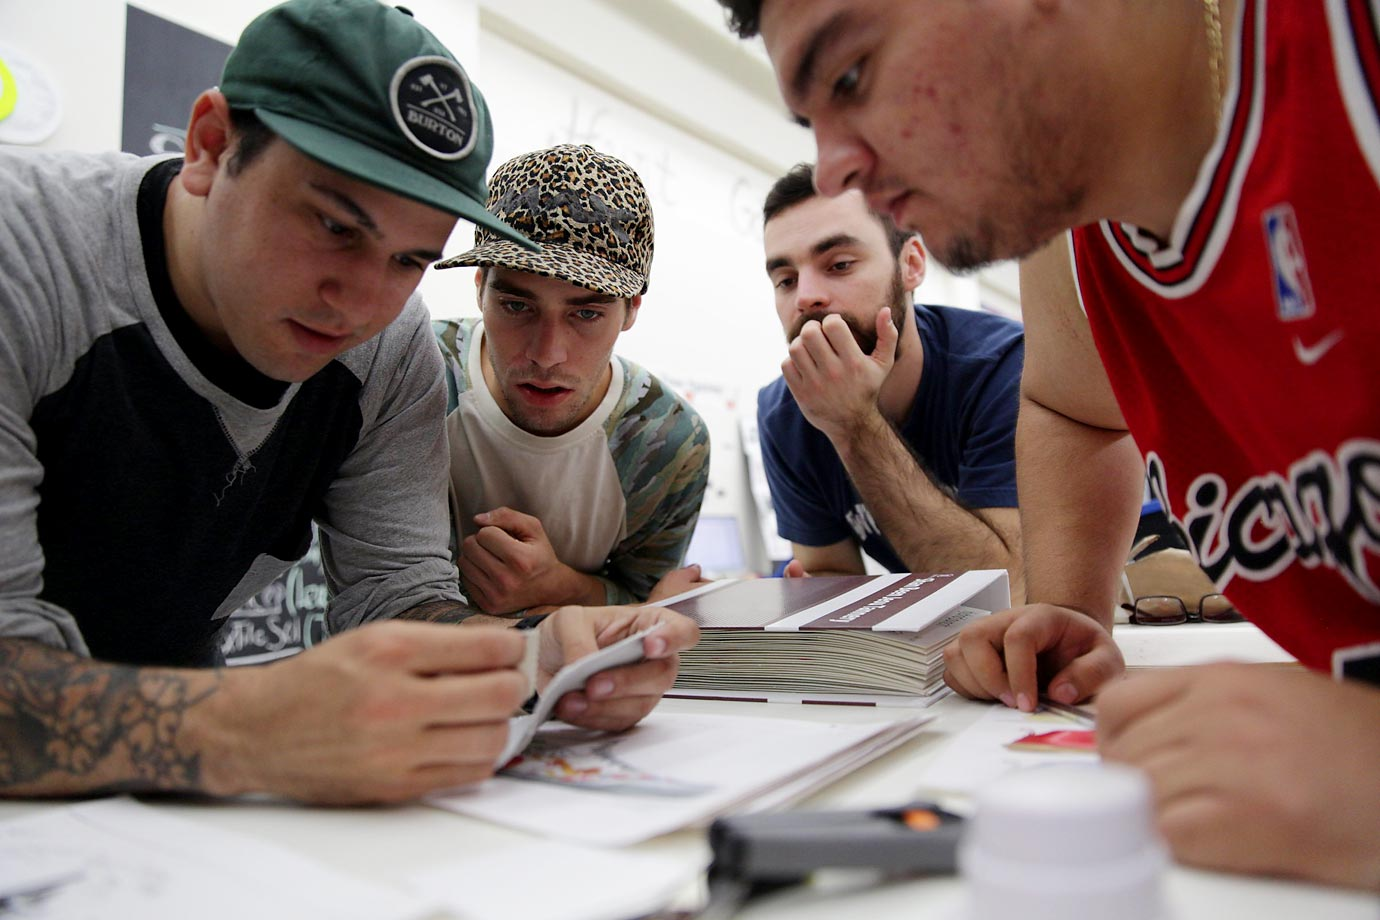 "From left: Shaun Kosoy (representing the United State), Jared Fiorovich (USA), Jesus Garate (Mexico) and Guilherme Lemes (Brazil) were competitors, technically, but eager to help each other in an effort to preserve the ""design integrity"" of sneakers."